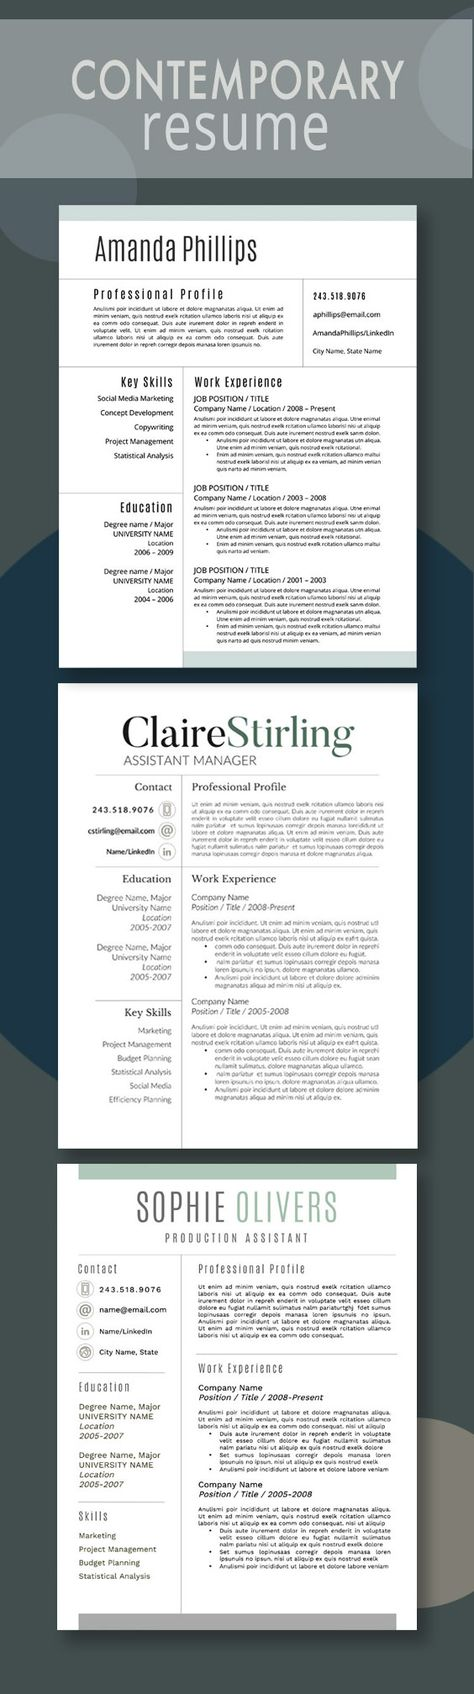 accomplishments in resume%0A     best Resume Content images on Pinterest   Resume ideas  Resume tips and  Design resume